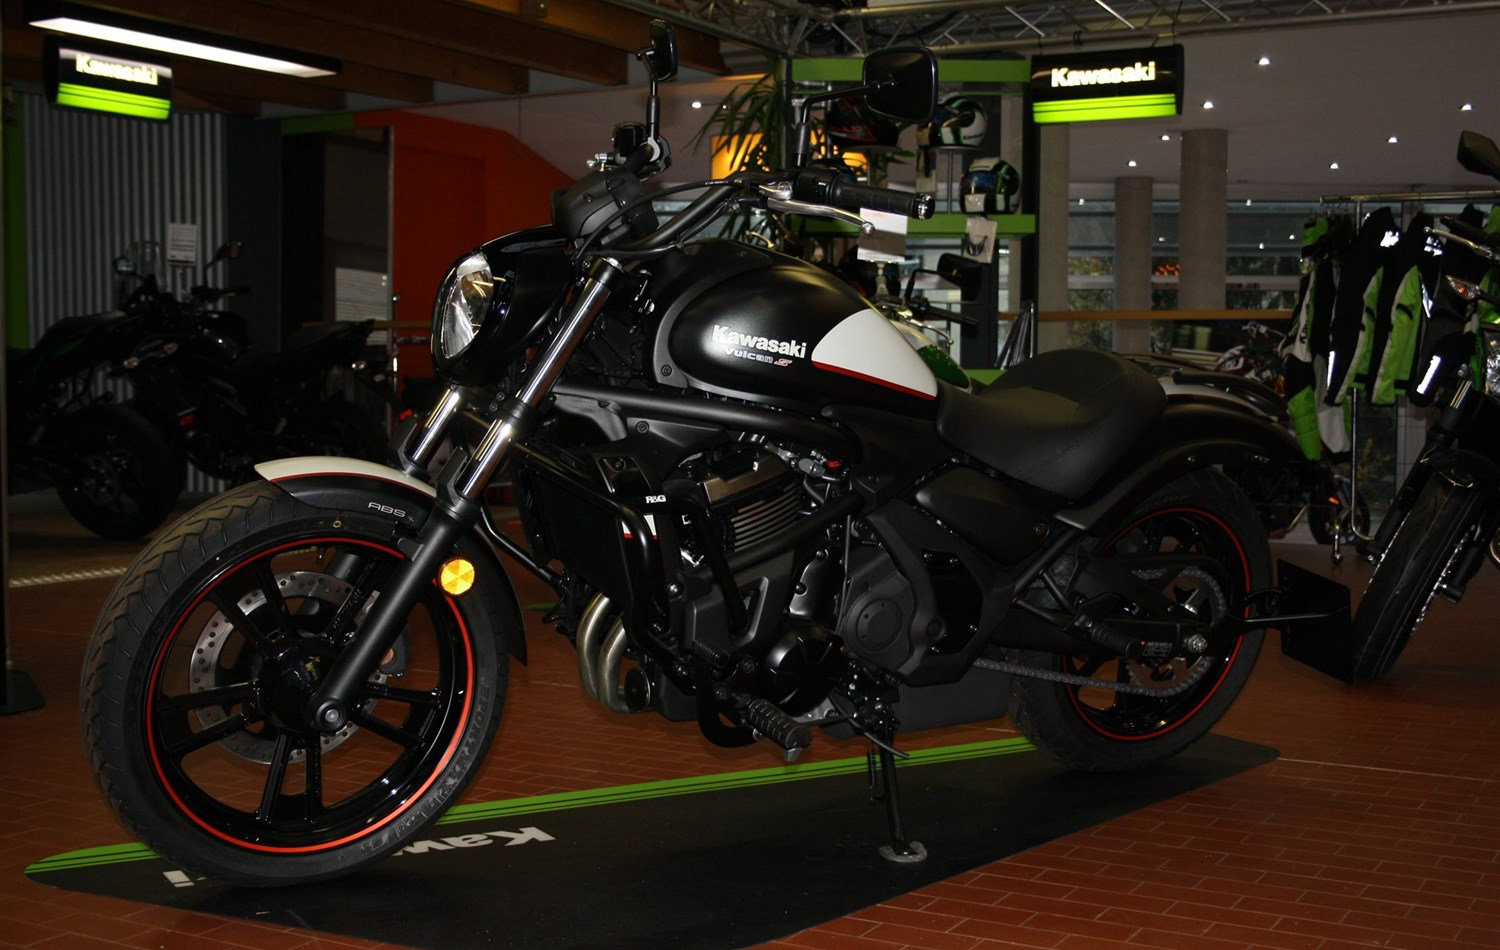 details zum custom bike kawasaki vulcan s special edition. Black Bedroom Furniture Sets. Home Design Ideas